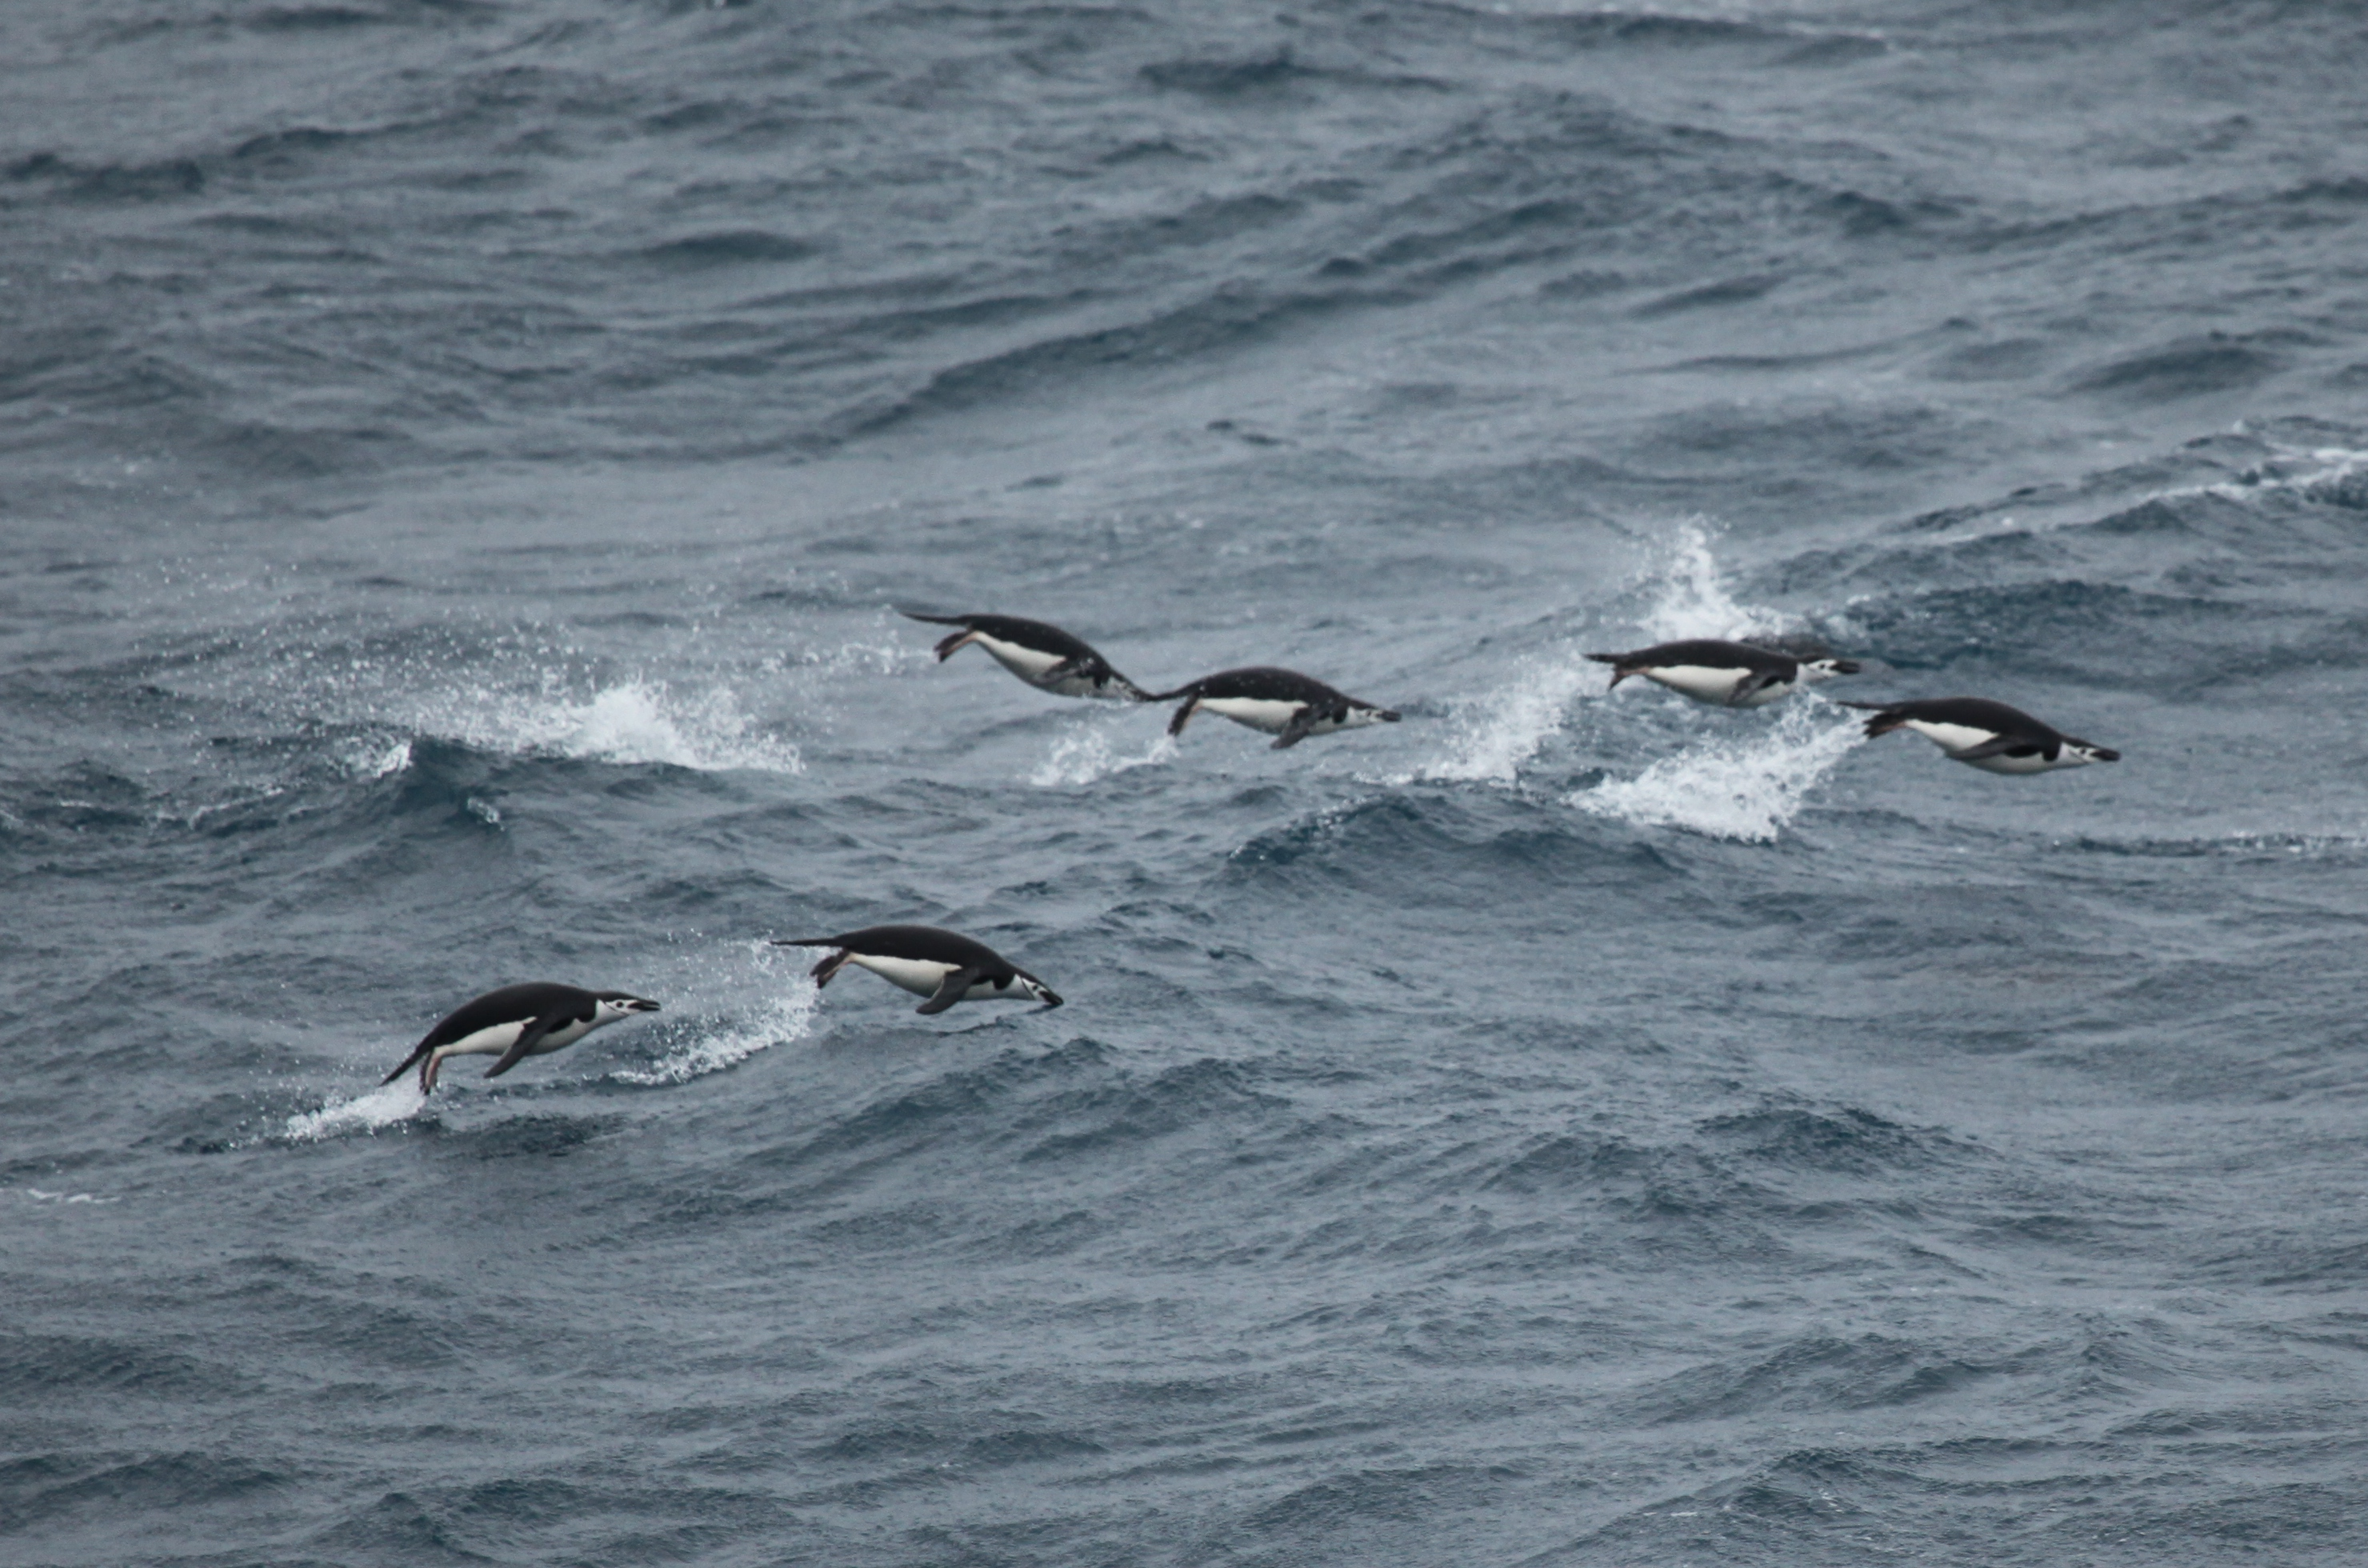 Chinstrap Penguins 'porpoising' in the Southern Ocean, near the South Orkney Islands.  Credit: Liam Quinn, Flickr